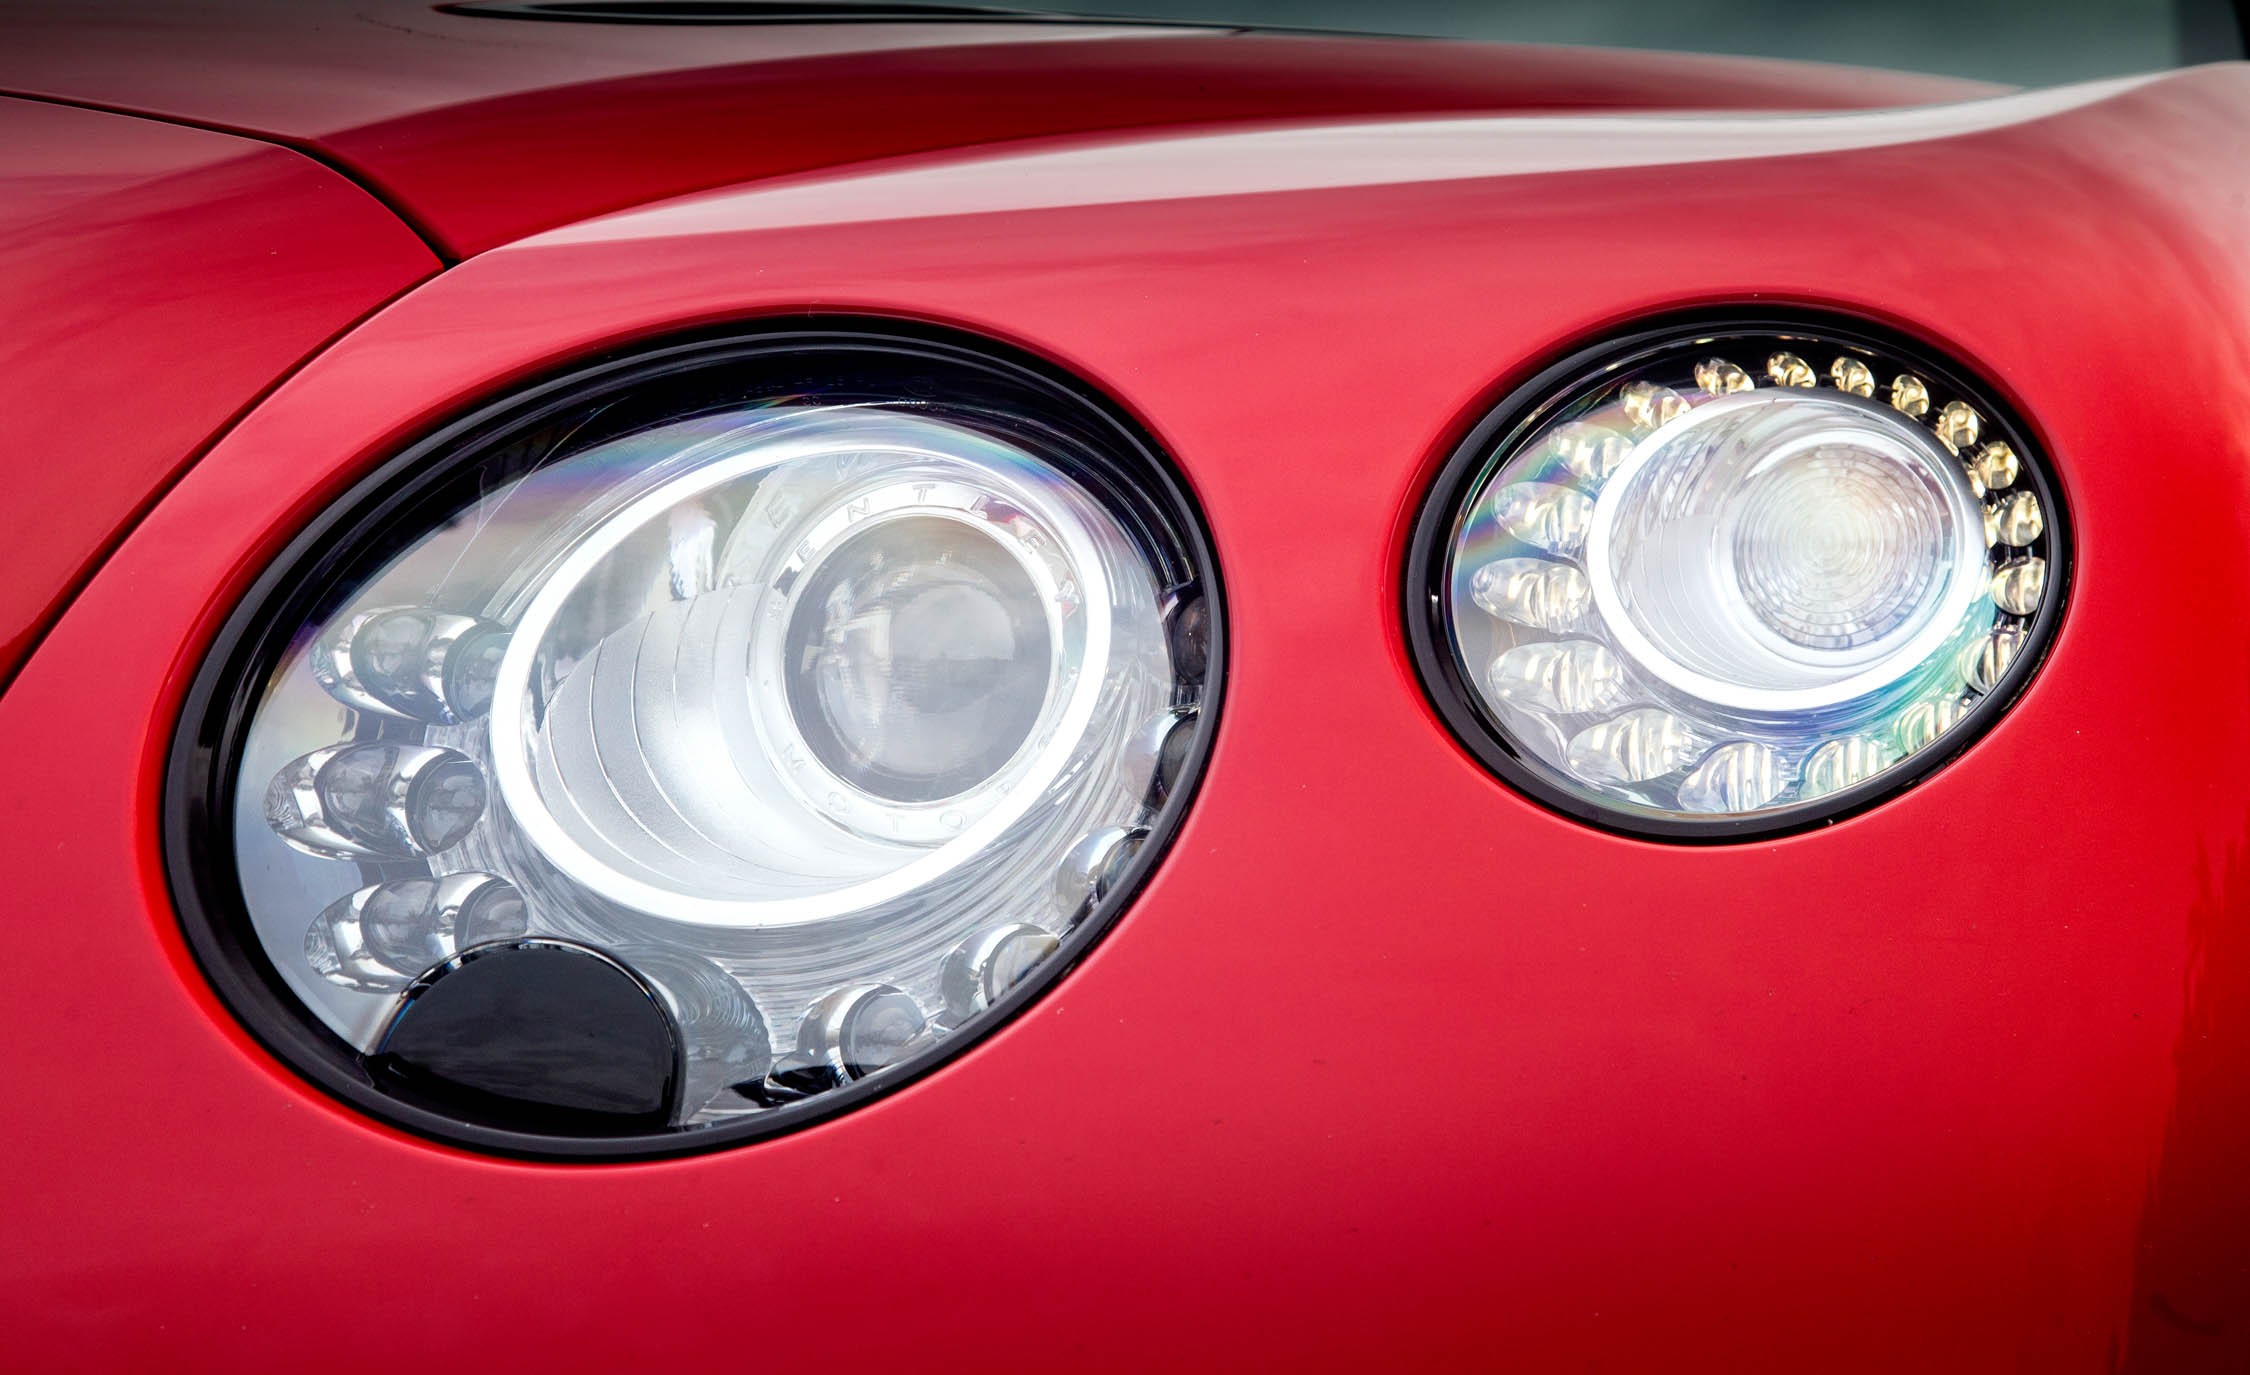 2018 Bentley Continental Supersports Exterior View Headlight (View 18 of 66)